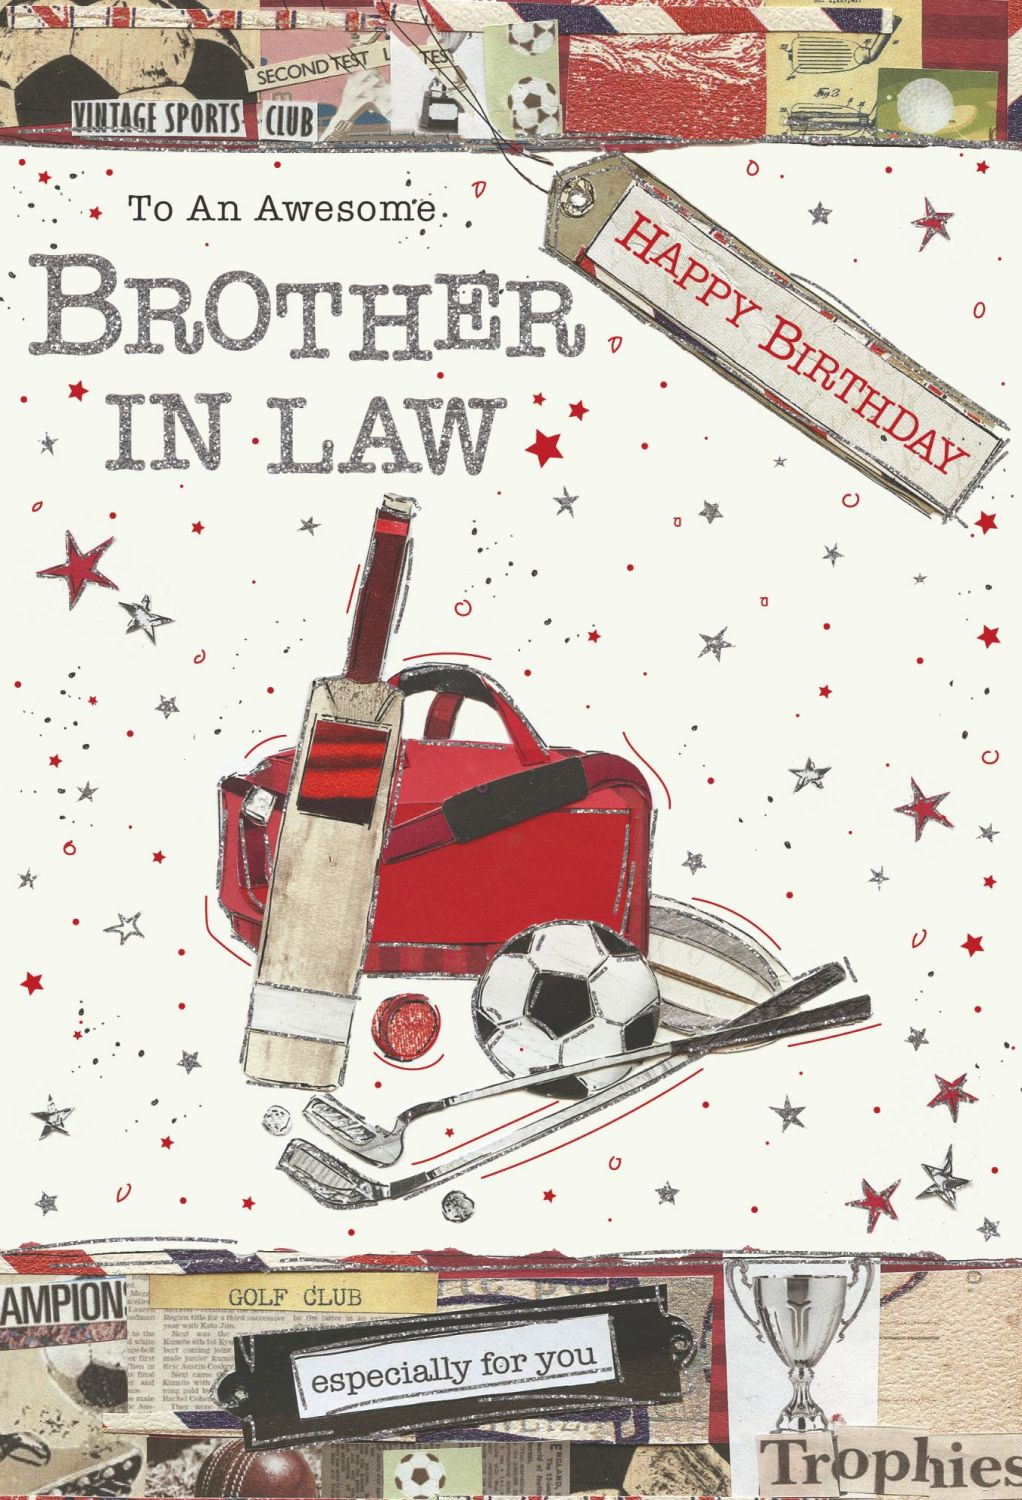 Awesome Brother In Law Birthday Card - ESPECIALLY For YOU - Happy BIRTHDAY